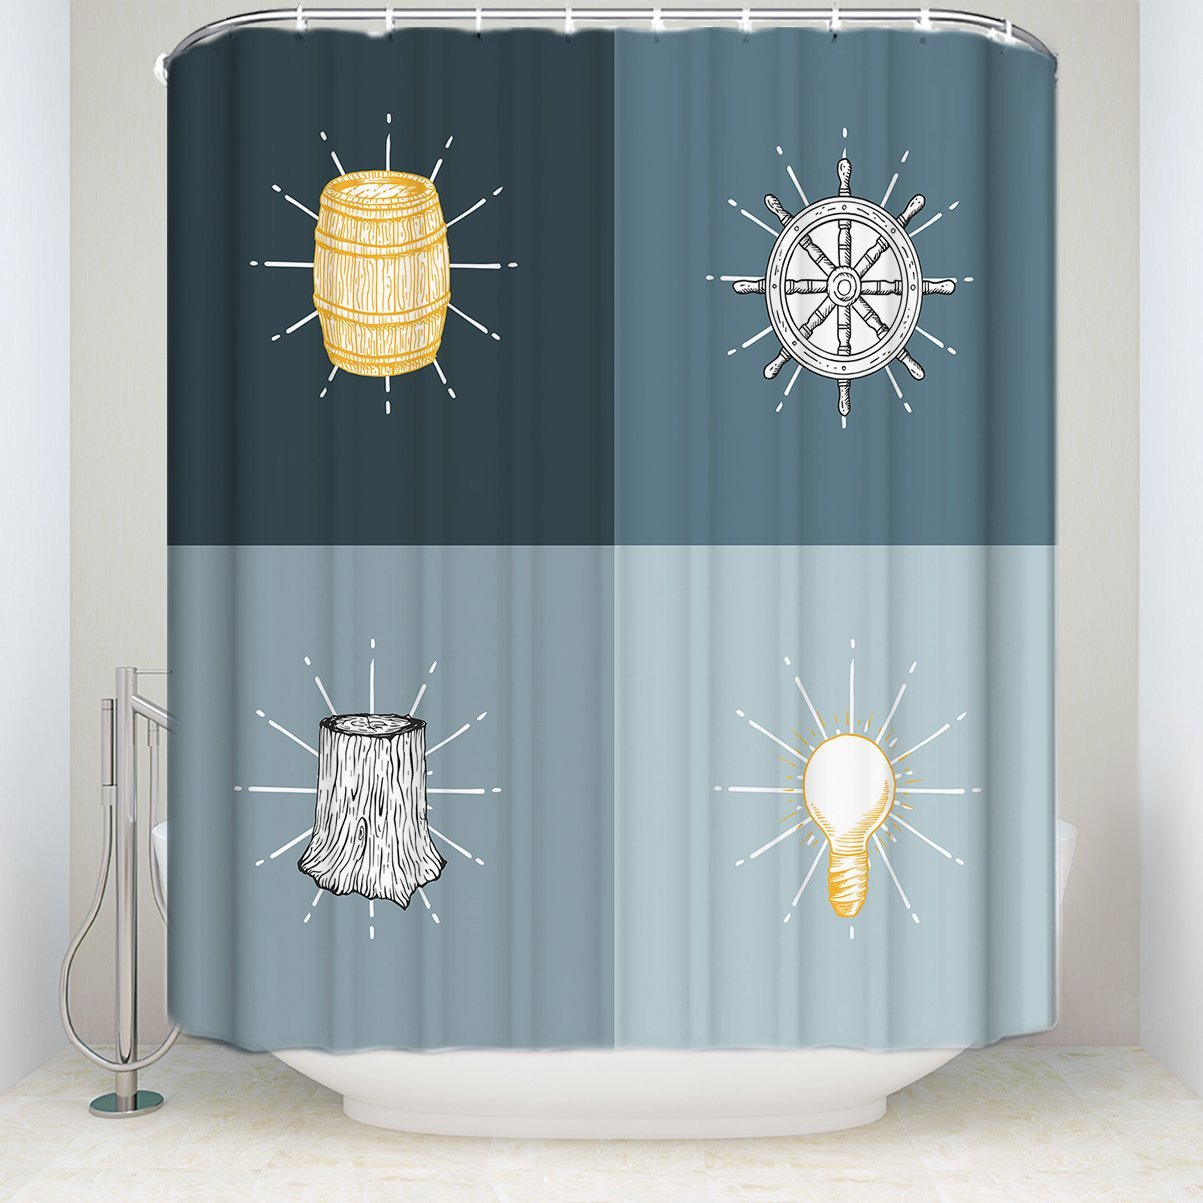 Get Quotations Vintage Style Shower Curtain Rudder Stump Light Print Waterproof Curtains For Bathroom